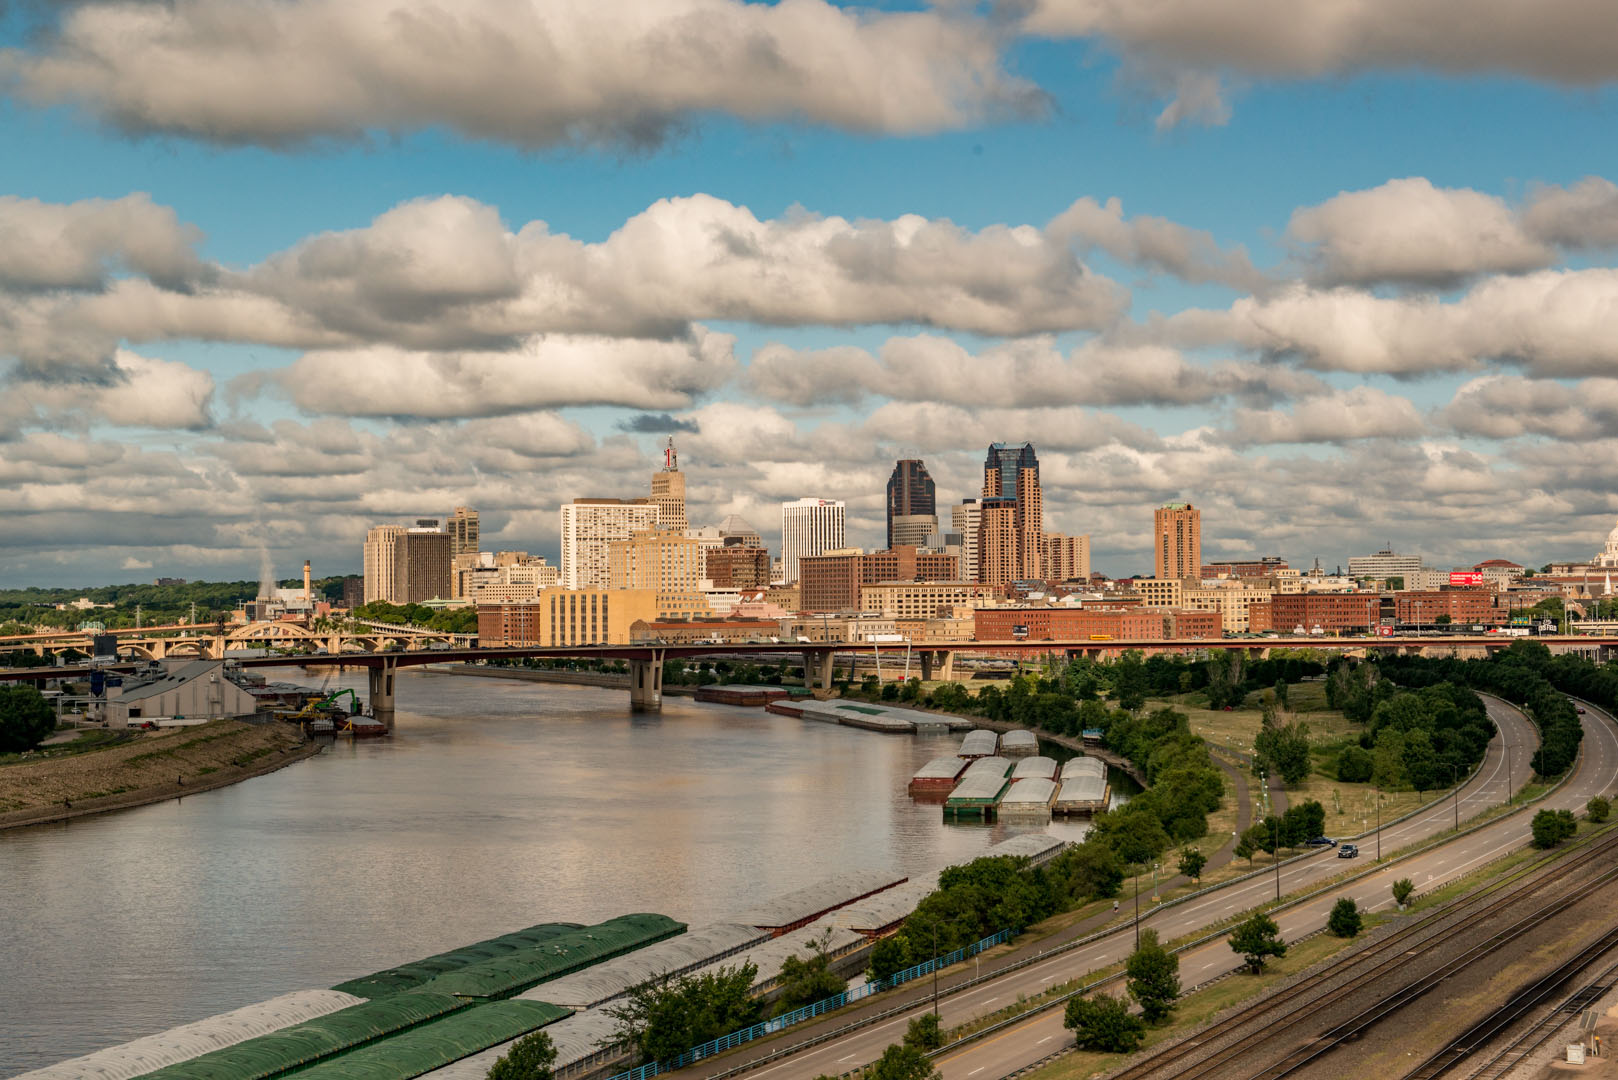 St. Paul on a Cloudy Morning - Color Print(Open) - Name Withheld Per Request